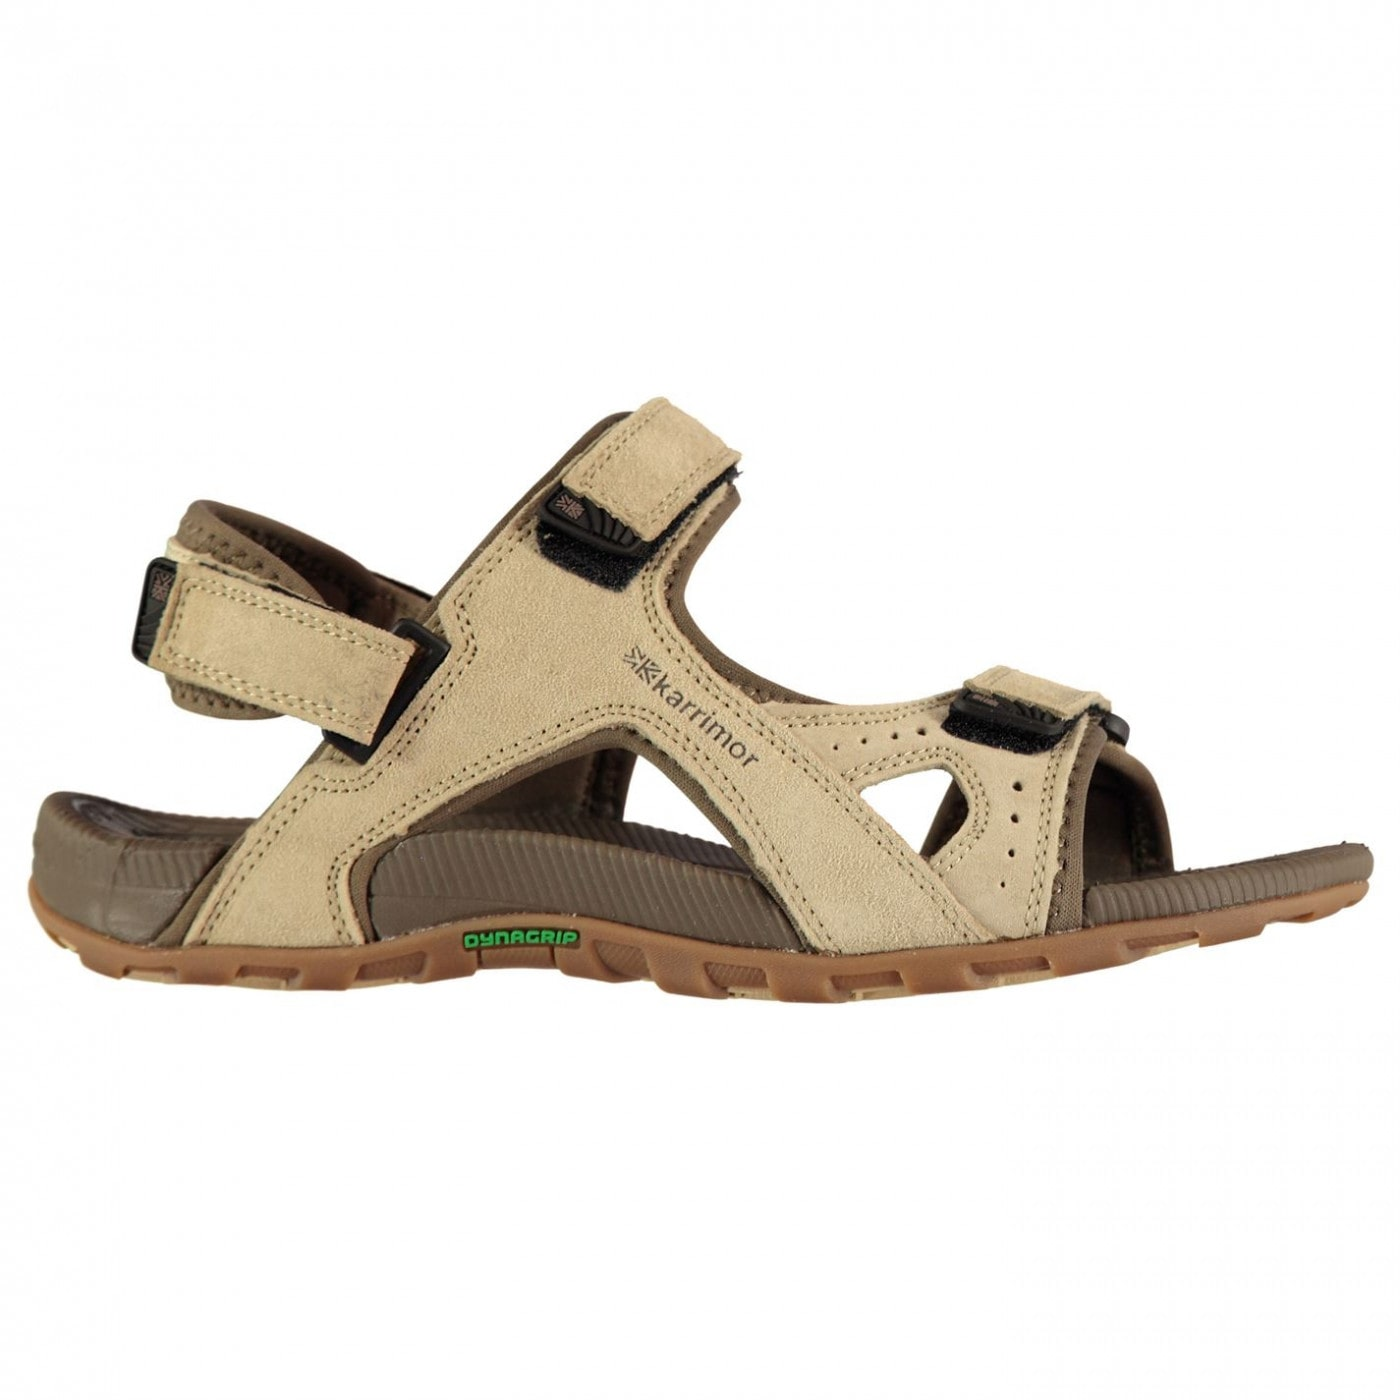 Men's sandals Karrimor Walking